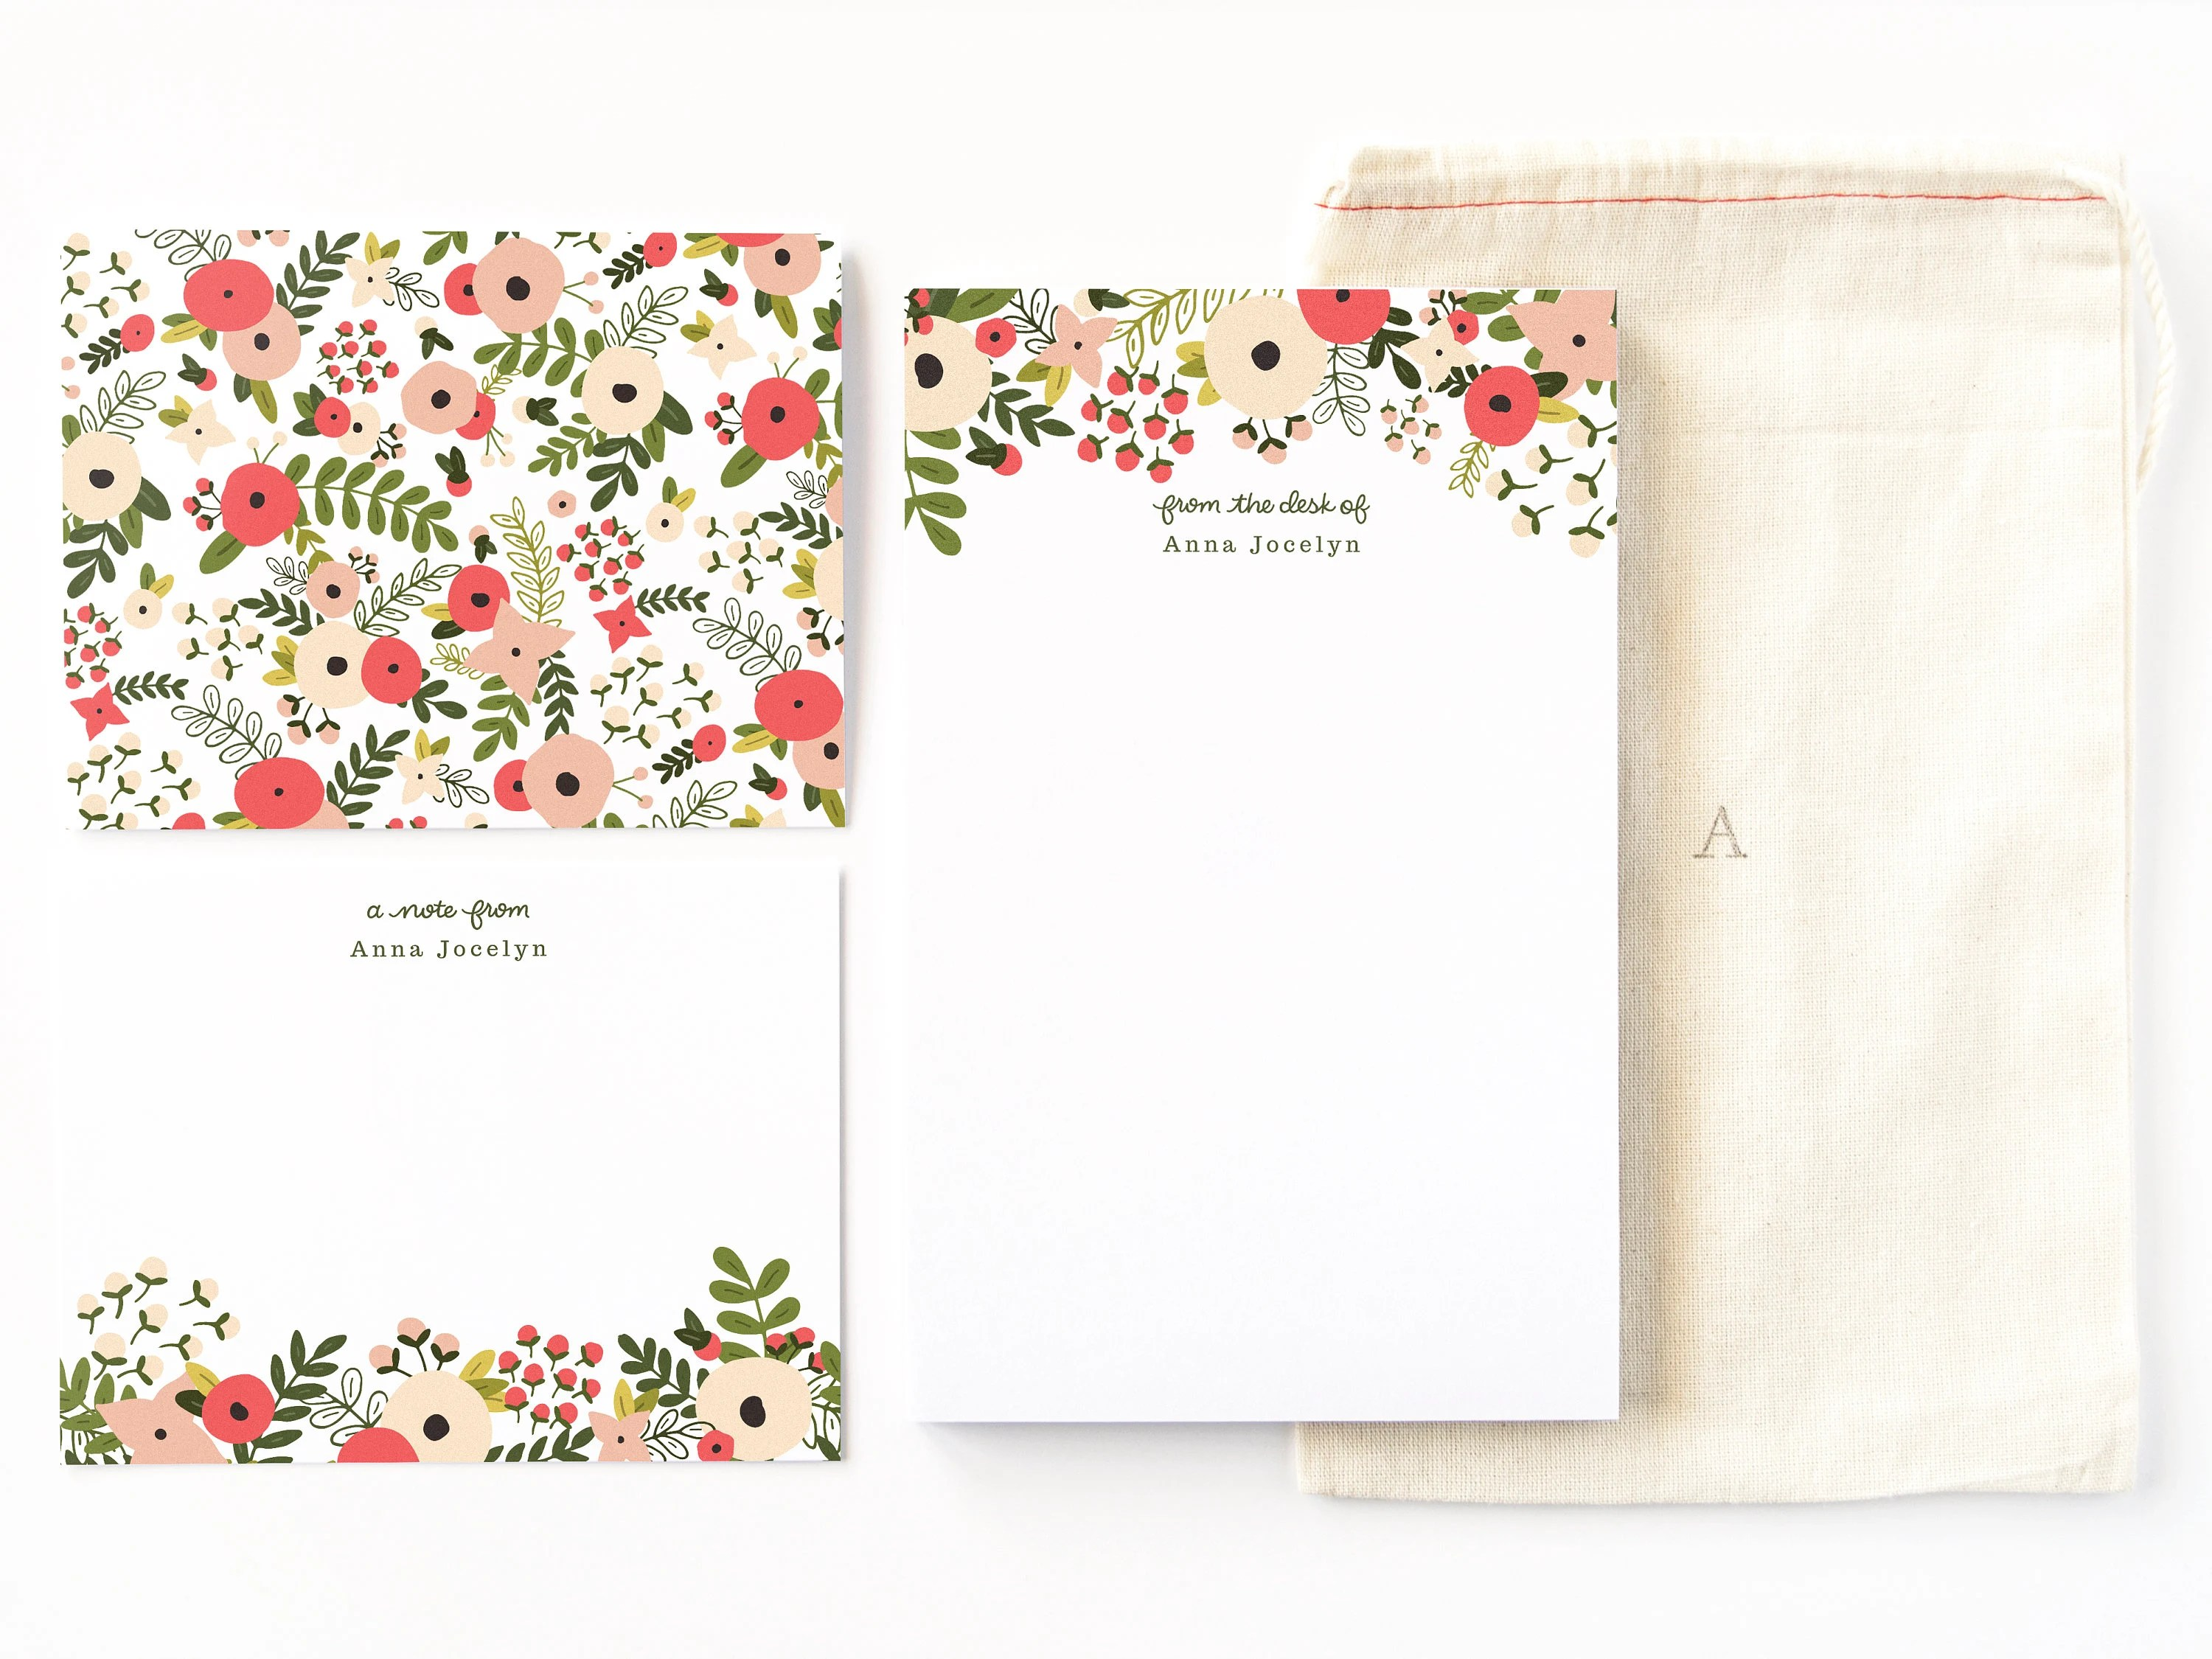 Personalized Stationery Set Illustrated Floral Stationery Etsy